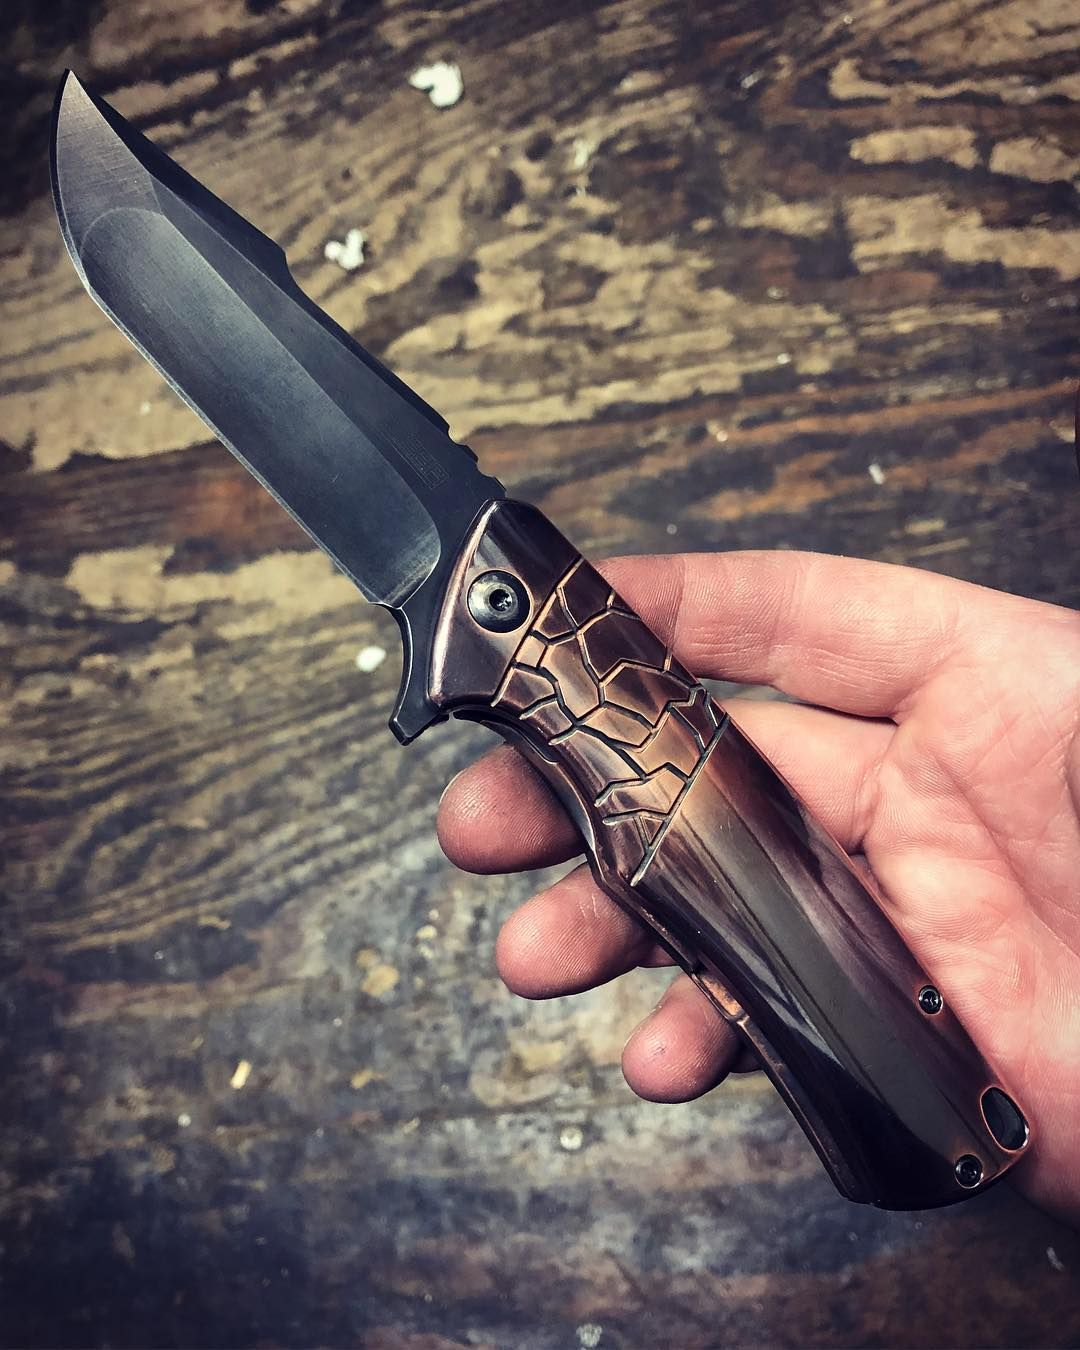 Zieba S4 With Solid Pure Silver Er Dum Spiro Spero Motto Inside First Made Pion Limitededitions Theperfectedc Merica Knife